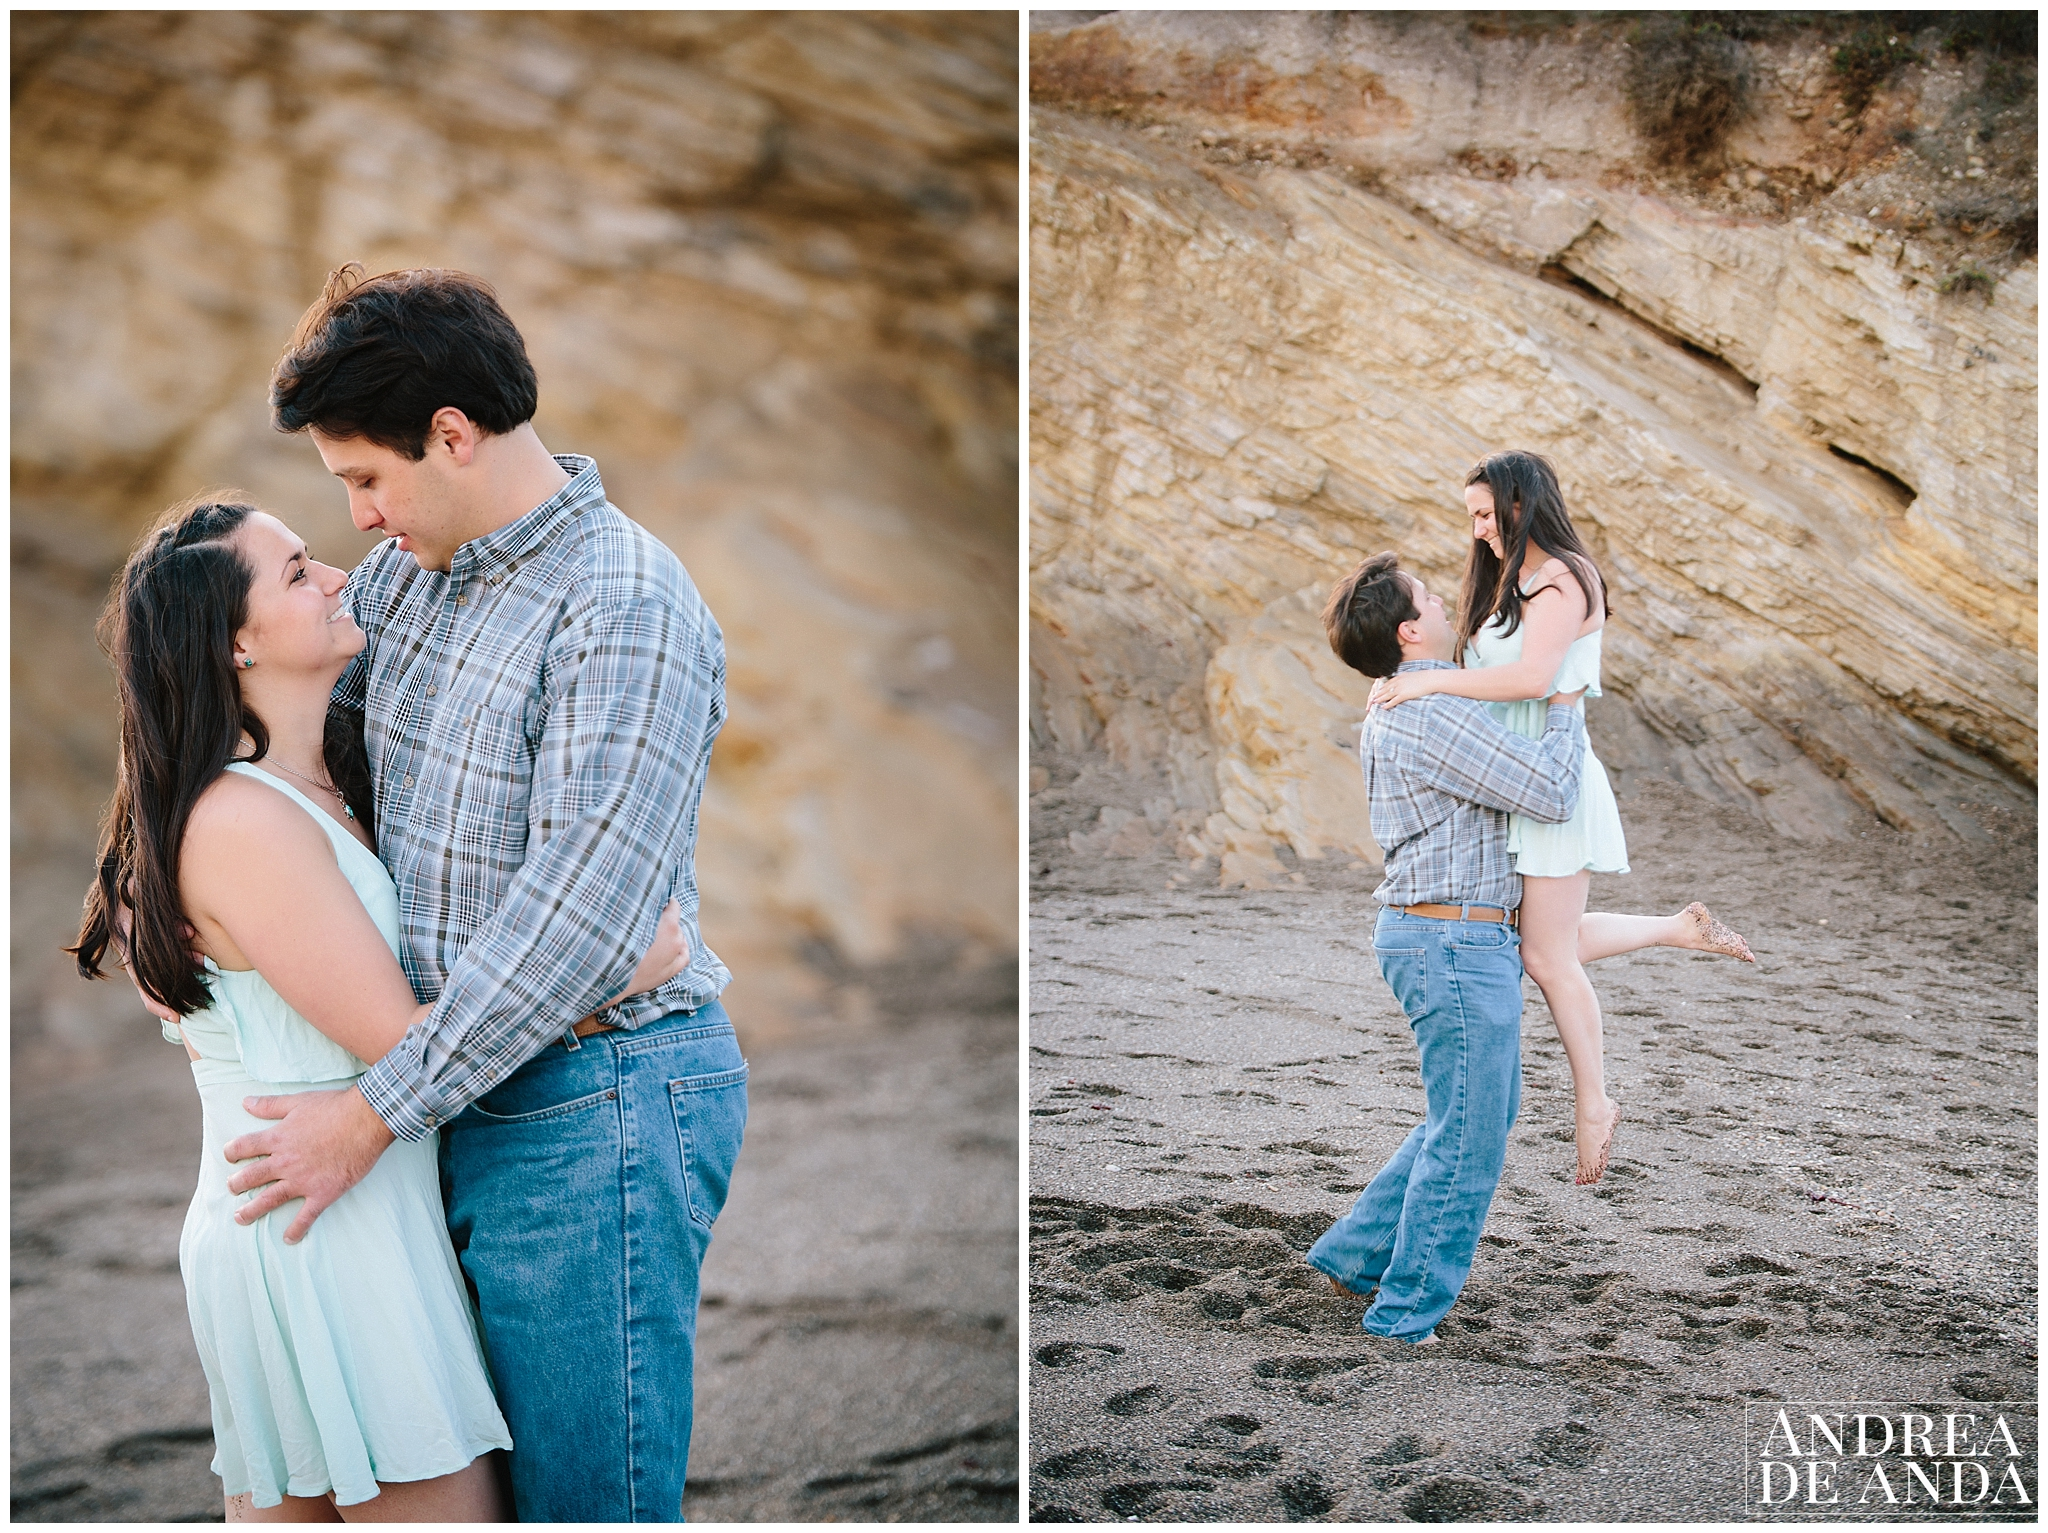 San Luis Obispo_Engagement session_Andrea de Anda Photography__0012.jpg